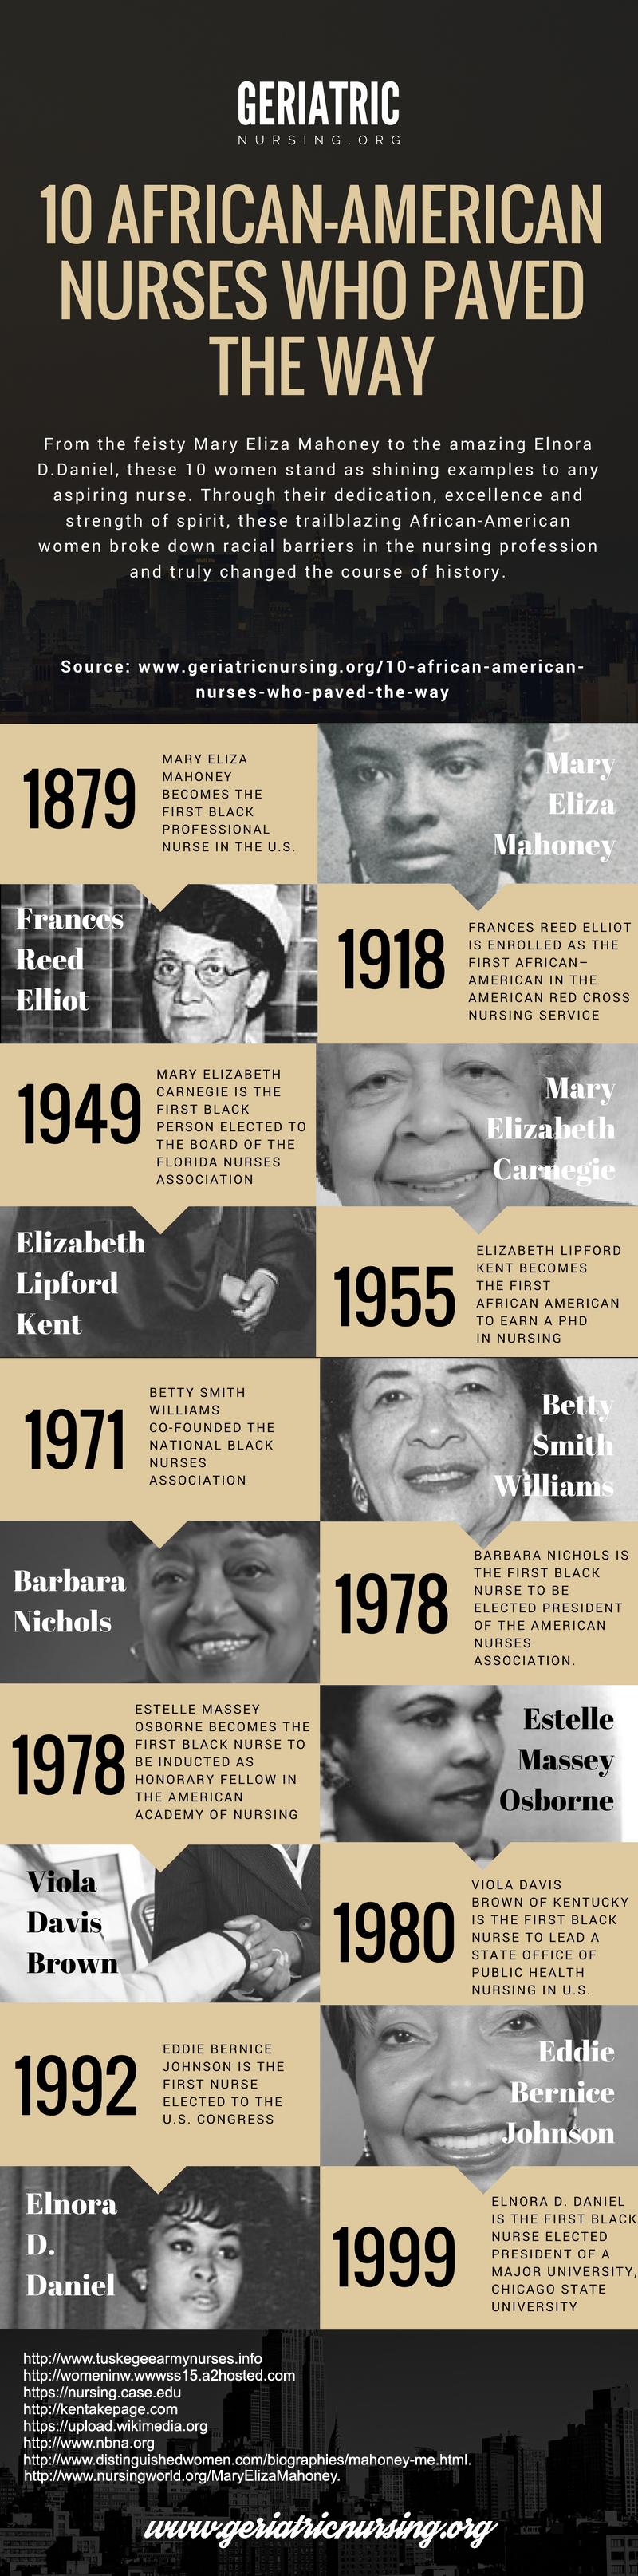 10 African American Nurses Who Paved the Way Infographic